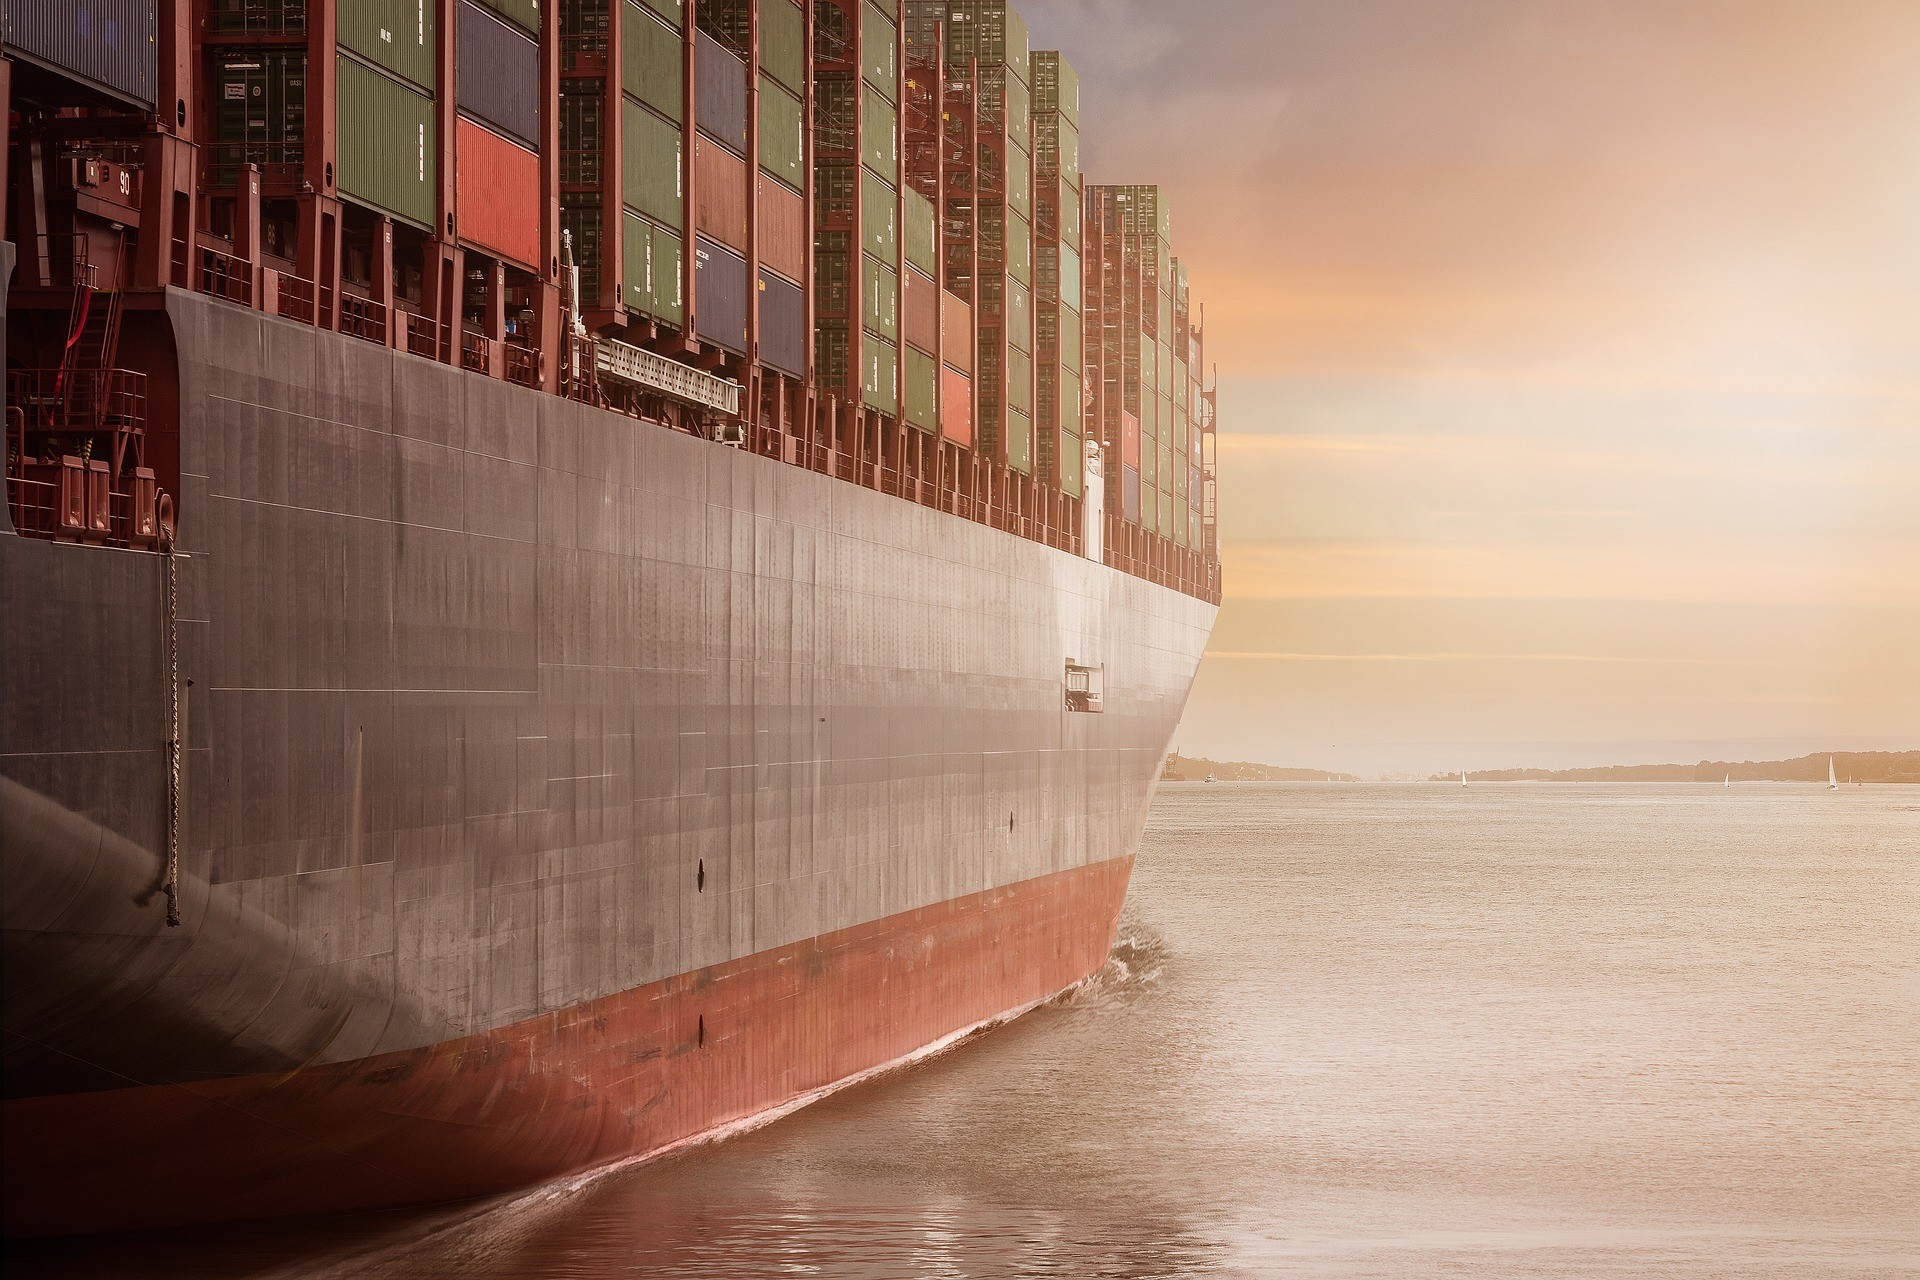 WOC AND WOMEN'S INTERNATIONAL SHIPPING & TRADING ASSOCIATION (WISTA) TO SIGN MOU AT SUSTAINABLE OCEAN SUMMIT